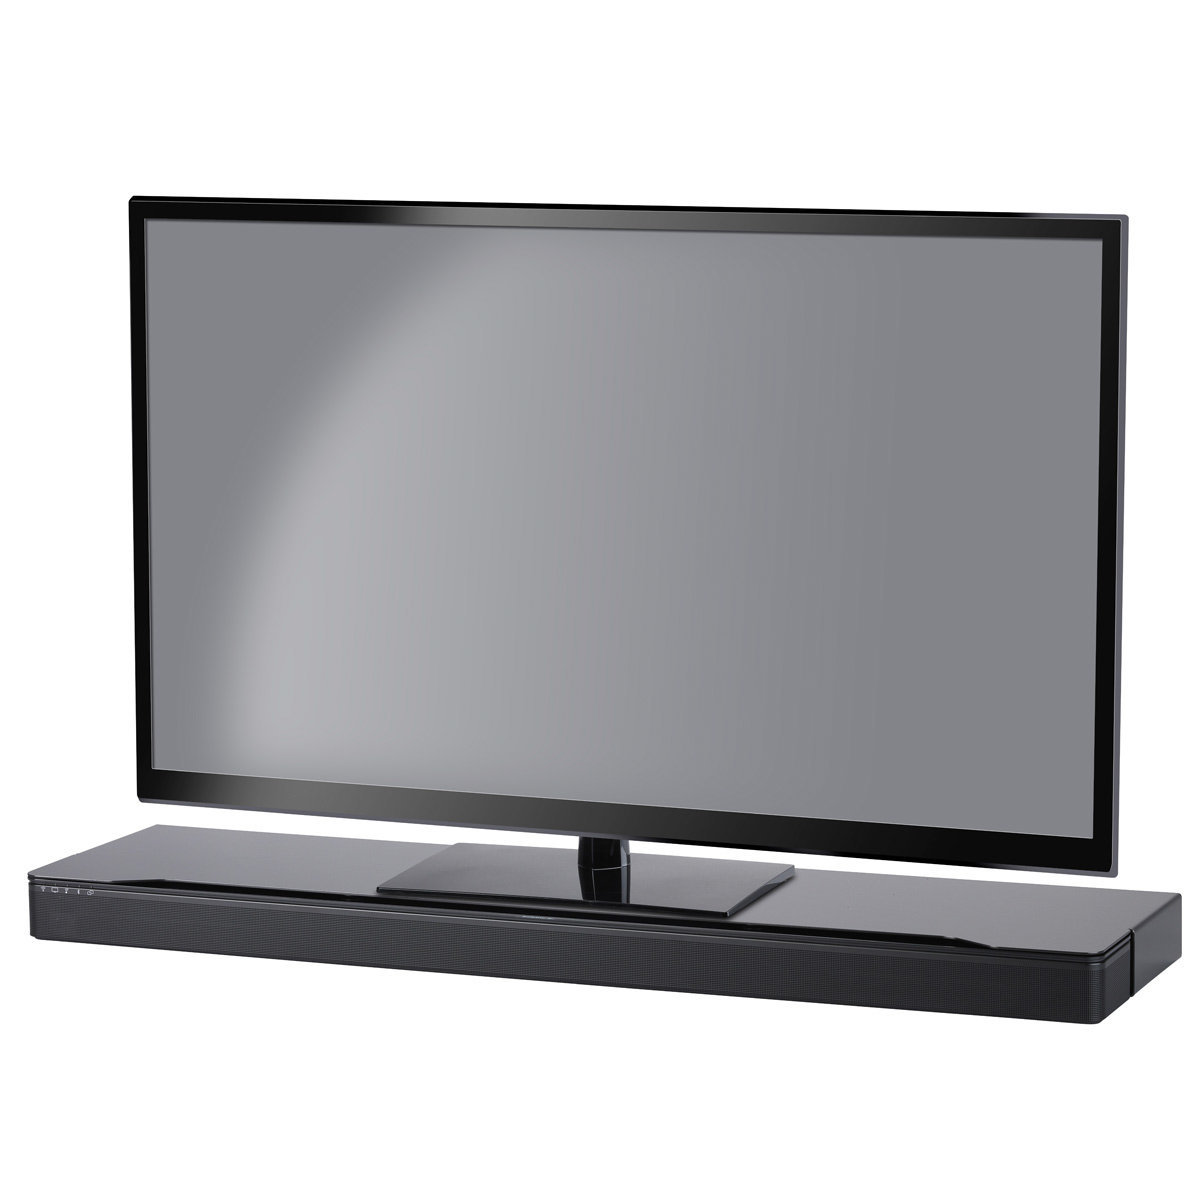 Flat Screen Tv Stands Soundxtra Tv Stand For Bose Soundtouch 300